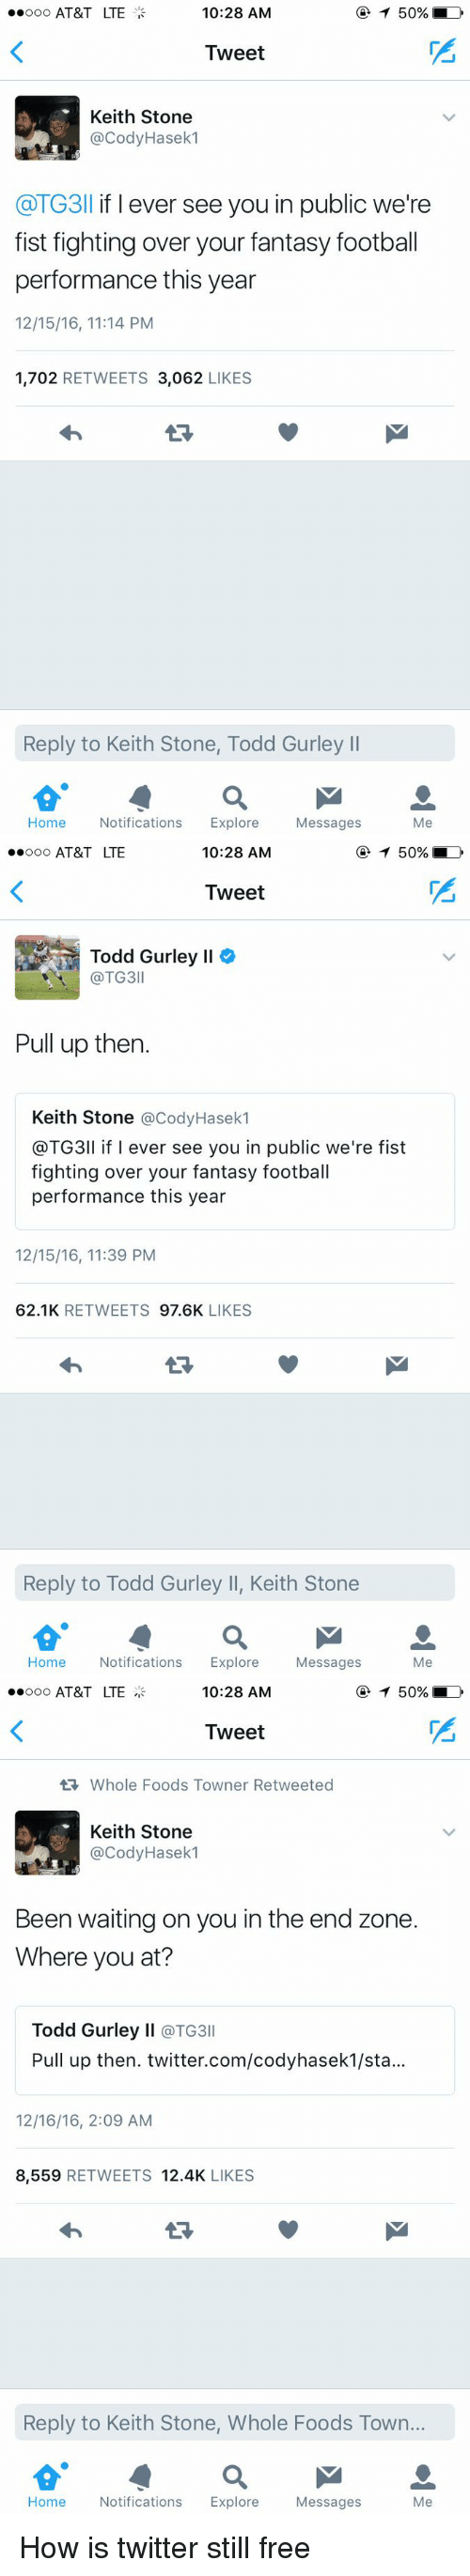 Fantasy football: 10:28 AM  ooo AT&T LTE  T 50% LD  Tweet  Keith Stone  @CodyHasek1  @TG3ll f ever see you in public we're  fist fighting over your fantasy football  performance this year  12/15/16, 11:14 PM  1,702  RETWEETS 3,062  LIKES  Reply to Keith Stone, Todd Gurley ll  Home Notifications  Explore  Messages  Me   10:28 AM  T 50% LD  ooooo AT&T LTE  Tweet  Todd Gurley ll  TG3  Pull up then.  Keith Stone  @Cody Hasek  @TG3ll if I ever see you in public we're fist  fighting over your fantasy football  performance this year  12/15/16, 11:39 PM  62.1K  RETWEETS  97.6K  LIKES  Reply to Todd Gurley ll, Keith Stone  Home Notifications  Explore  Messages  Me   10:28 AM  ooo AT&T LTE  T 50% LD  Tweet  Whole Foods Towner Retweeted  Keith Stone  @Cody Hasek  Been waiting on you in the end zone.  Where you at?  Todd Gurley ll  @TG3  Pull up then. twitter.com/codyhasek1/sta...  12/16/16, 2:09 AM  8,559  RETWEETS 12.4K  LIKES  Reply to Keith Stone, Whole Foods Town...  Home Notifications  Explore  Messages  Me How is twitter still free